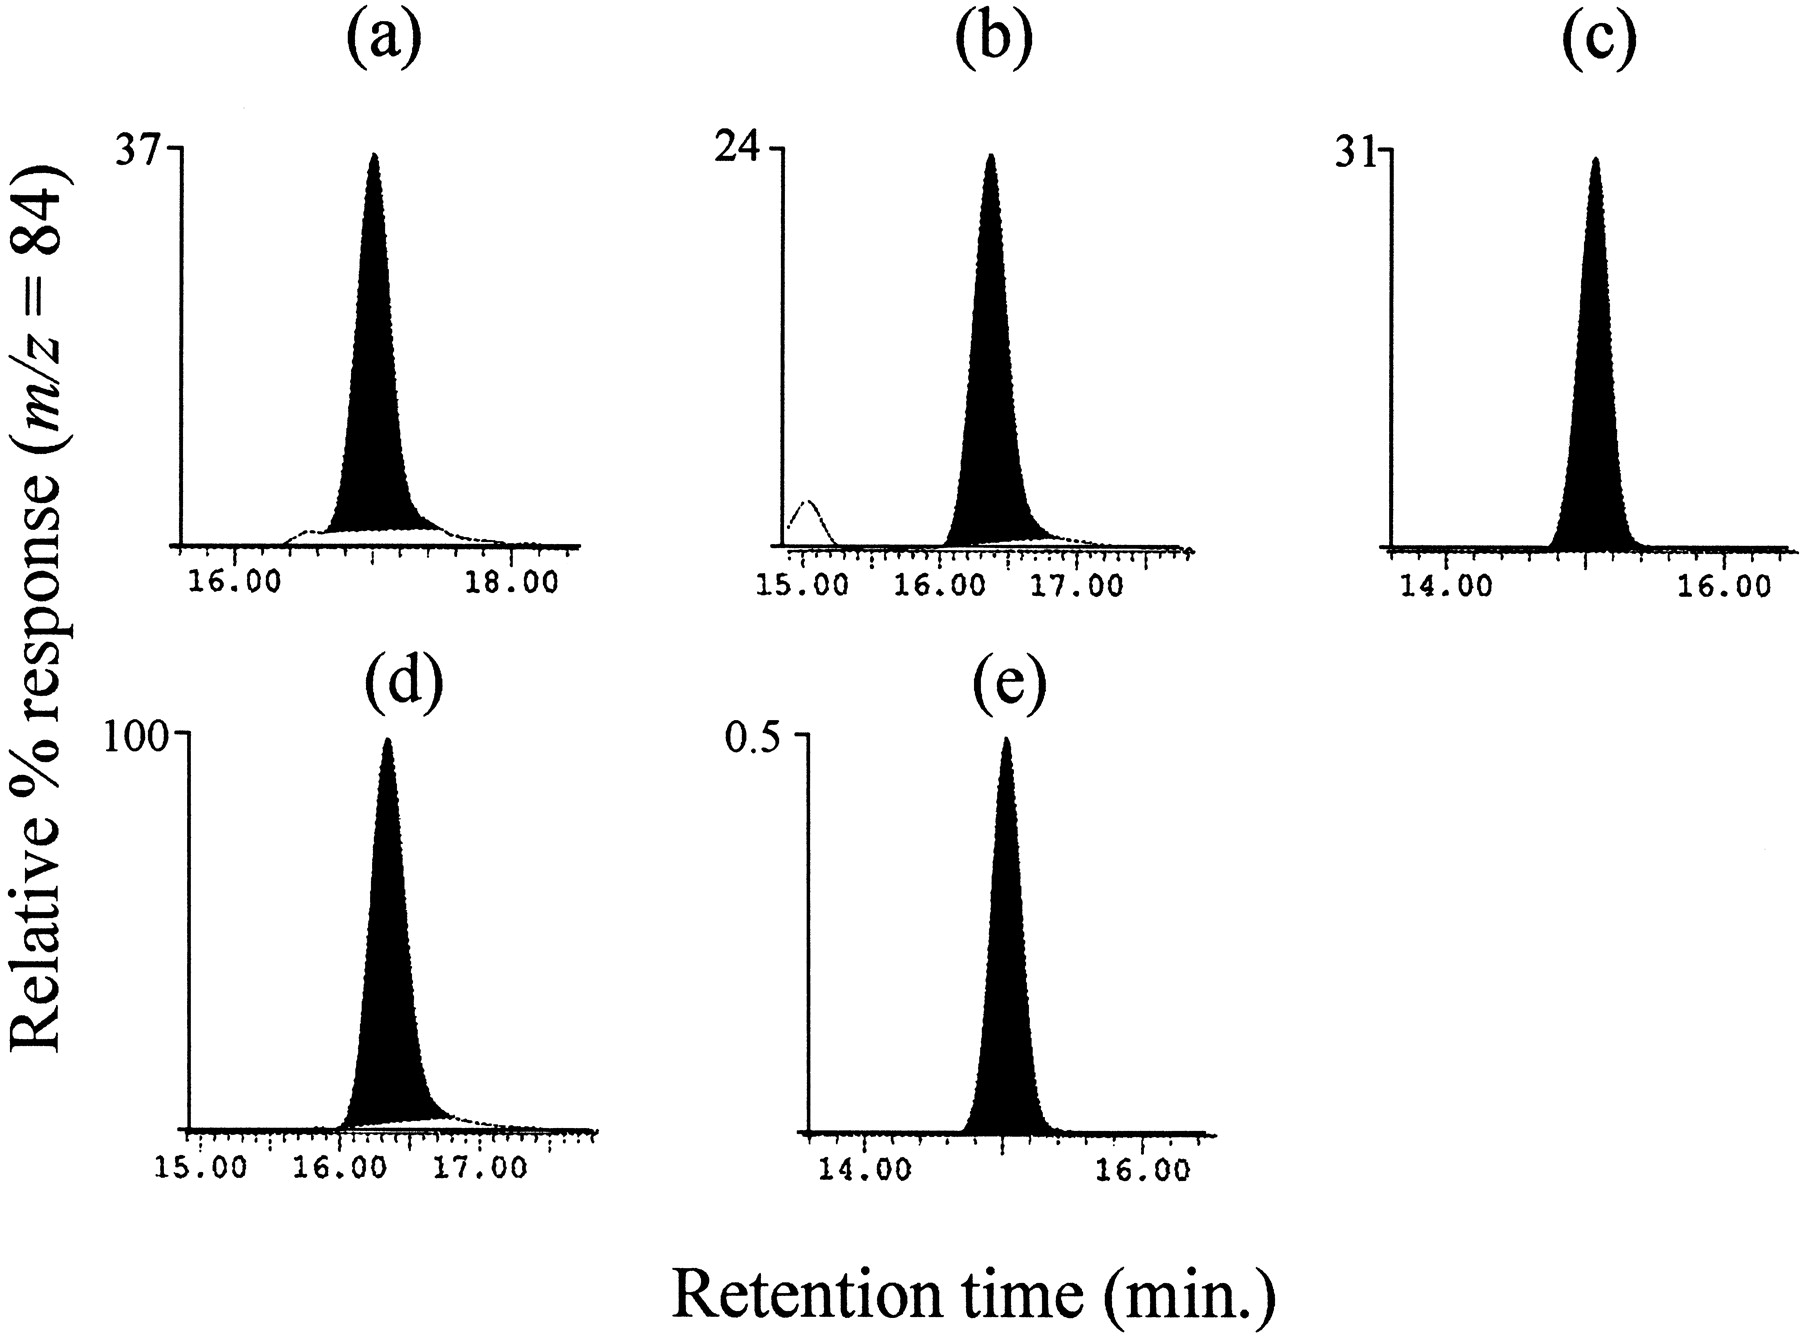 Ethylphenidate Formation in Human Subjects after the Administration